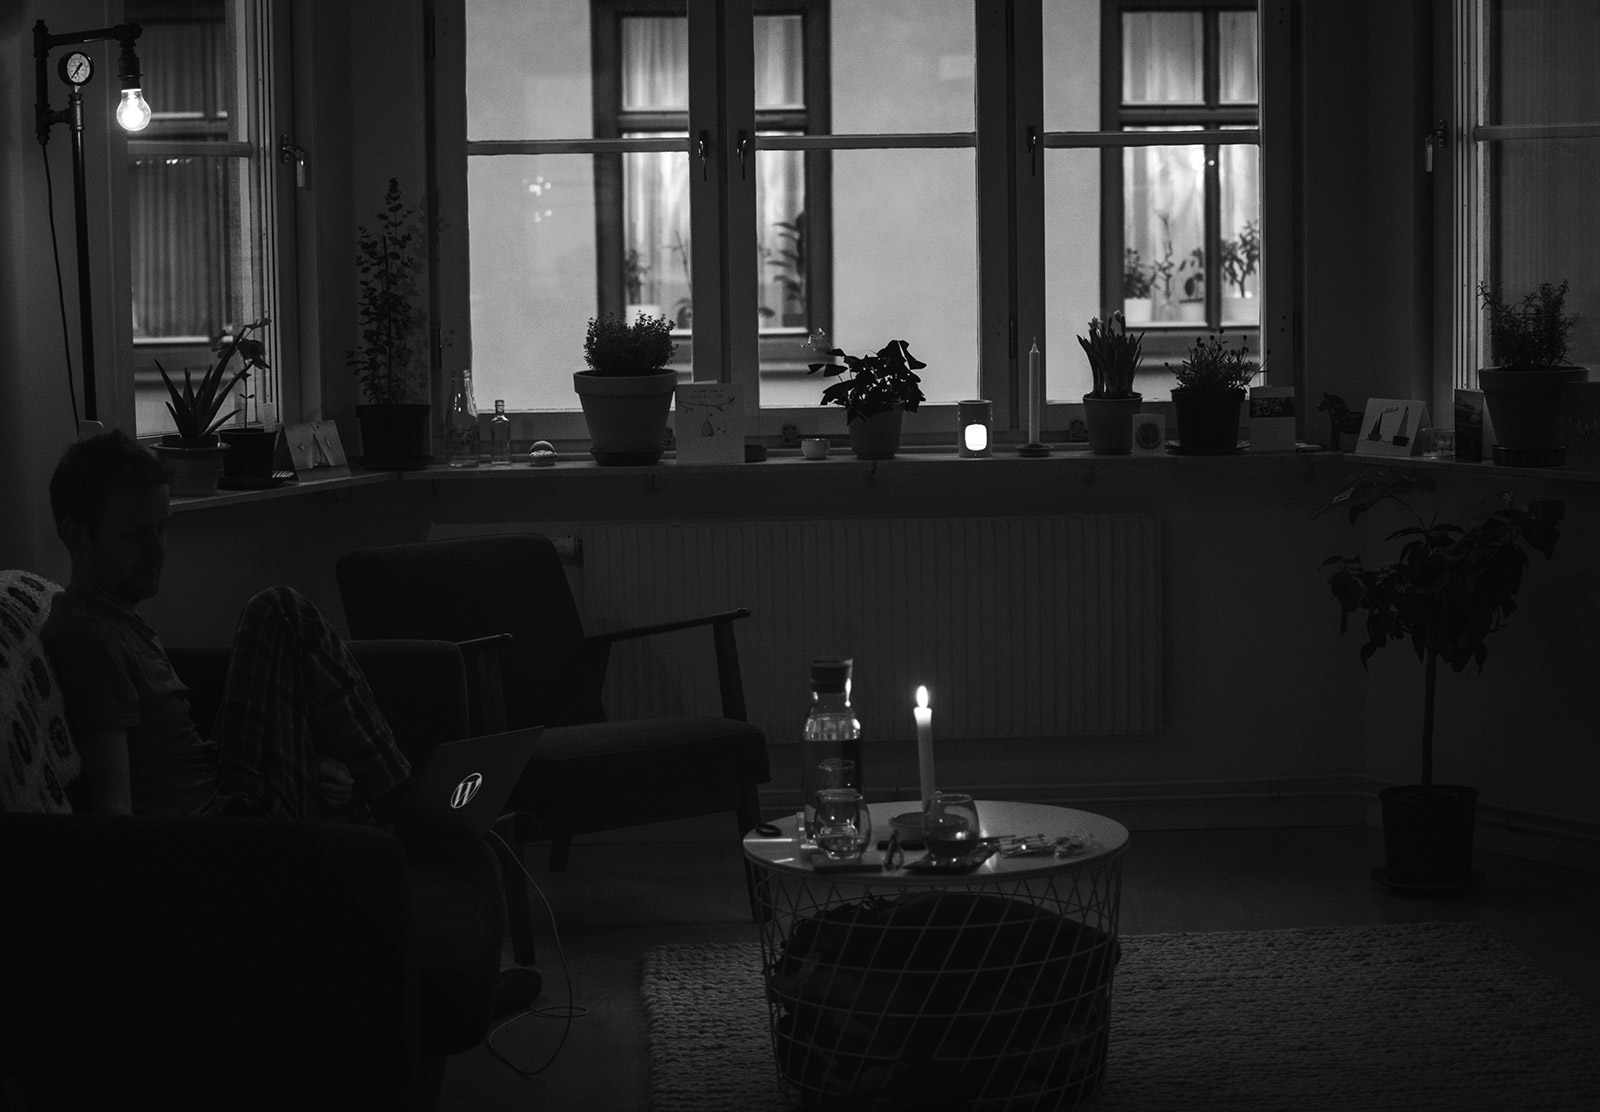 Candles in home